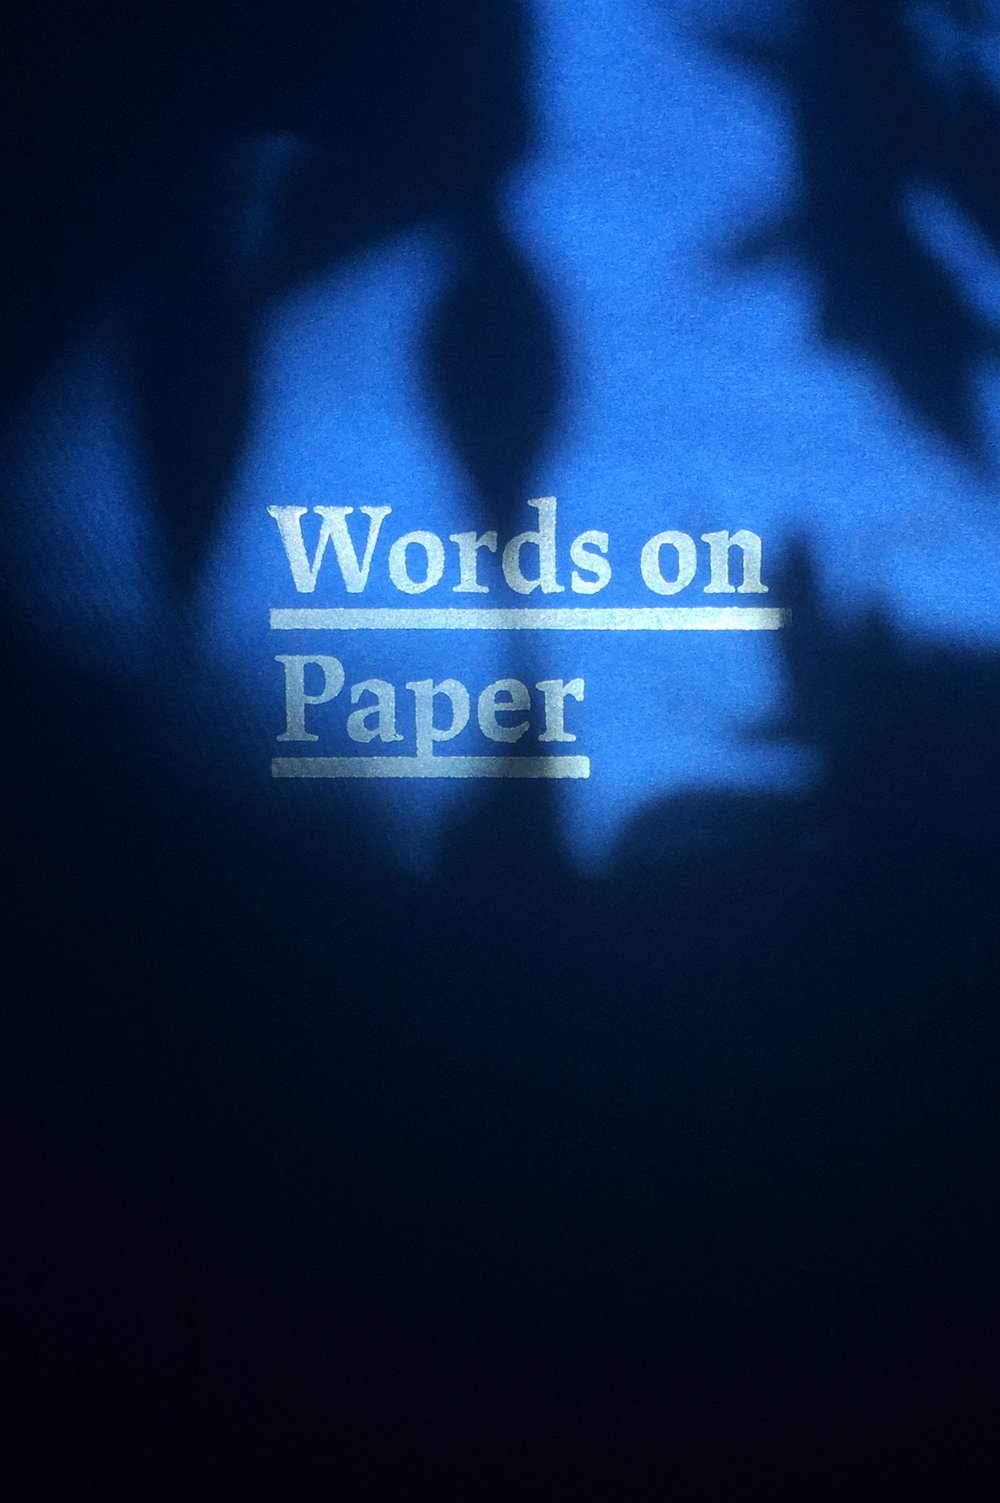 wordsonpaper_cover_2.jpg